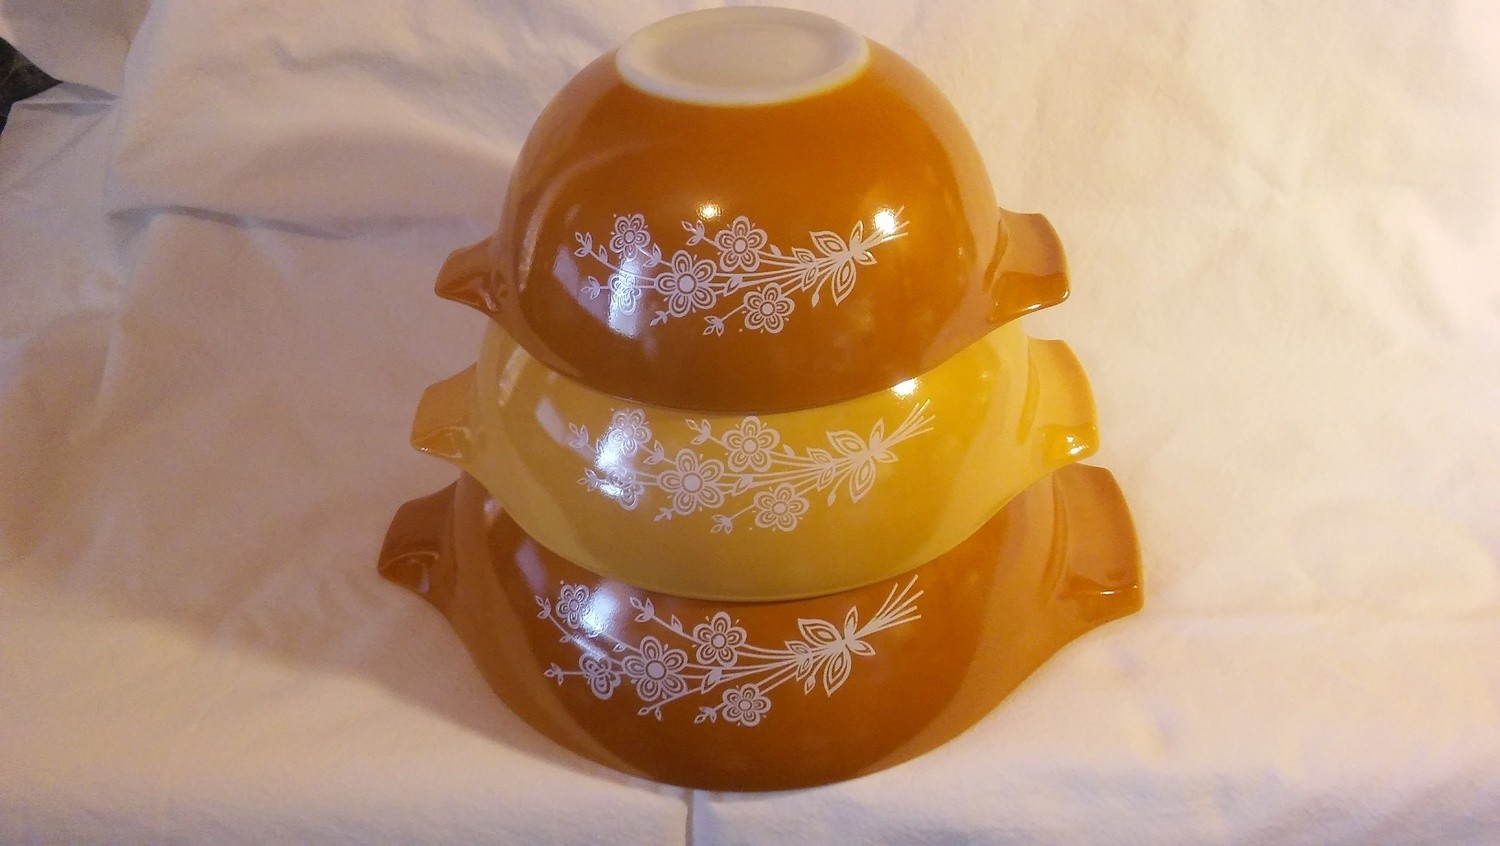 Vintage Pyrex Nesting Mixing Bowls, 442, 443, 444,  Butterfly Gold - 2 Pattern